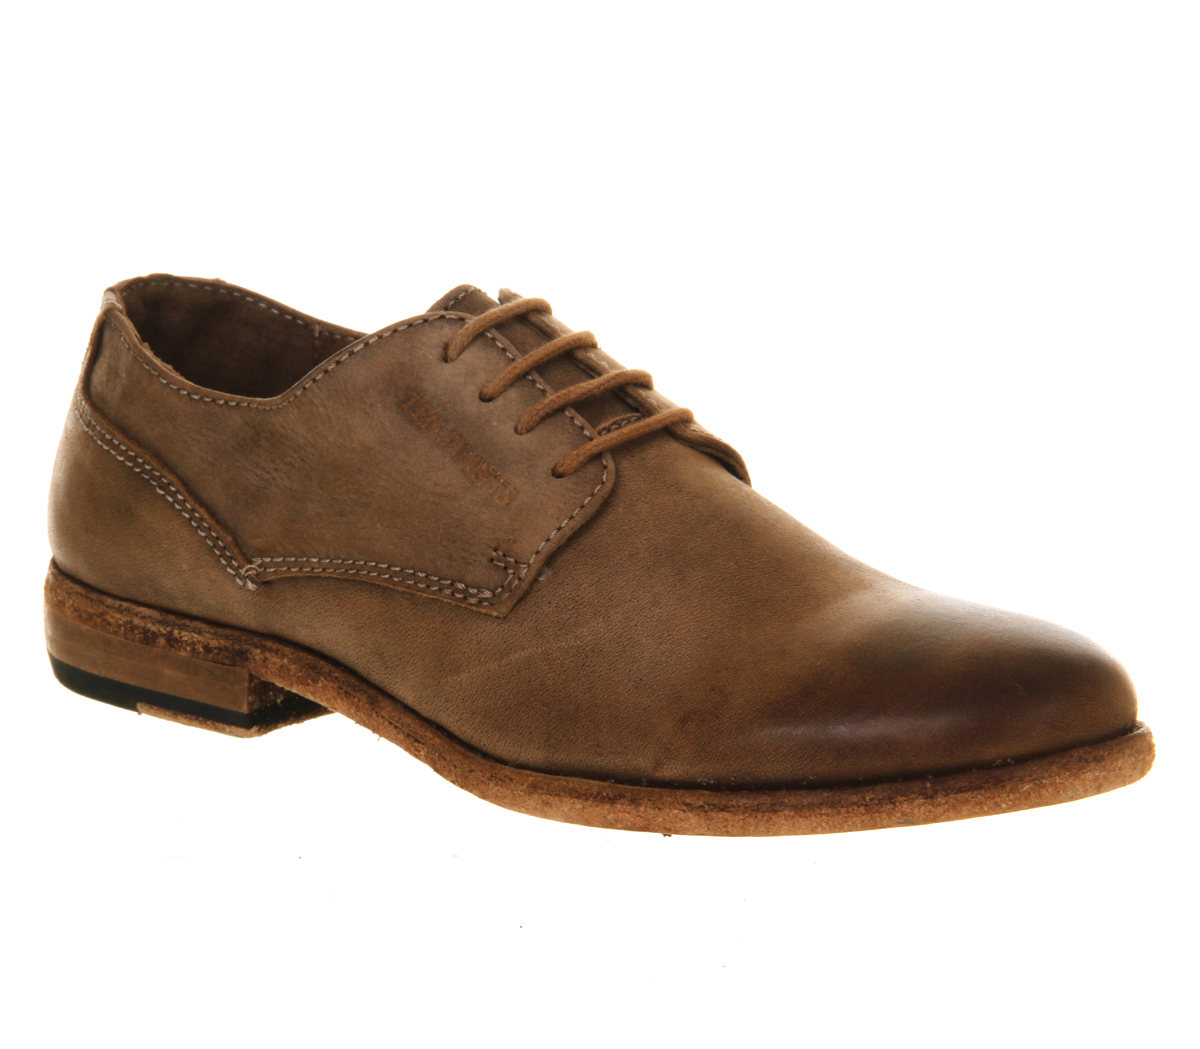 Womens-Ten-Points-Chantilly-Shoe-BROWN-LEATHER-Flats